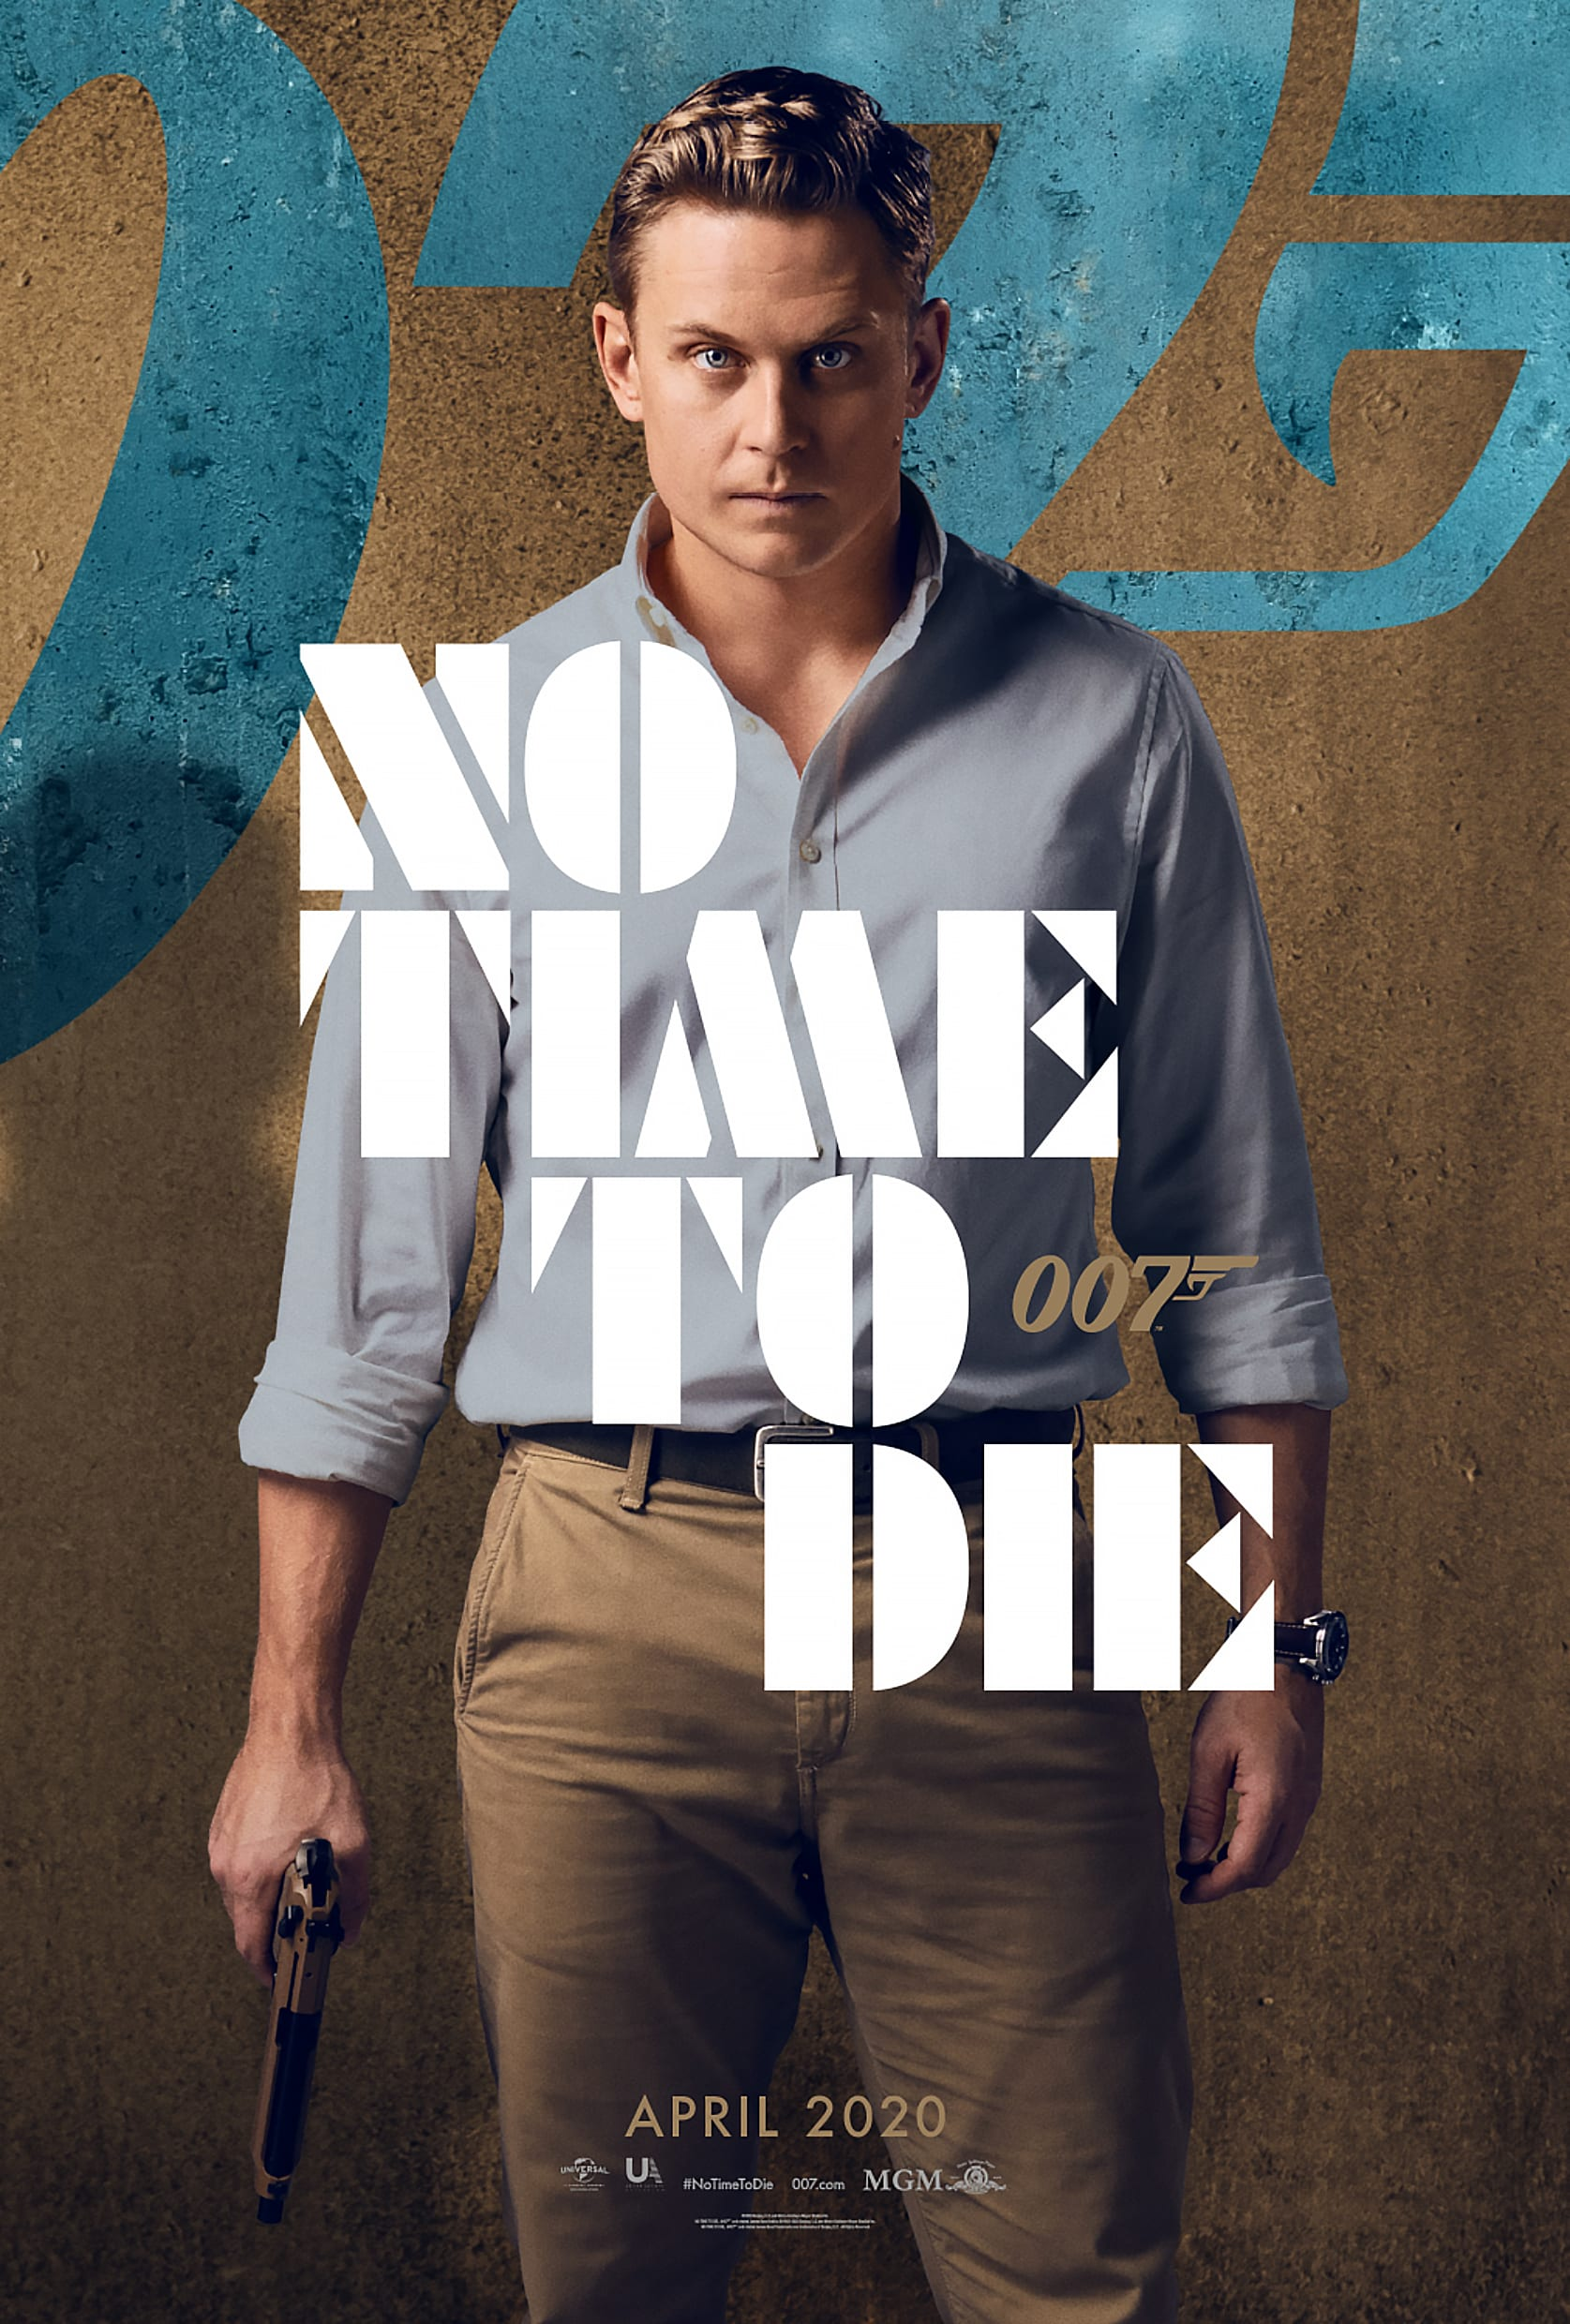 007 No Time To Die Bond 25 Character Posters Billy Magnussen as Logan Ash